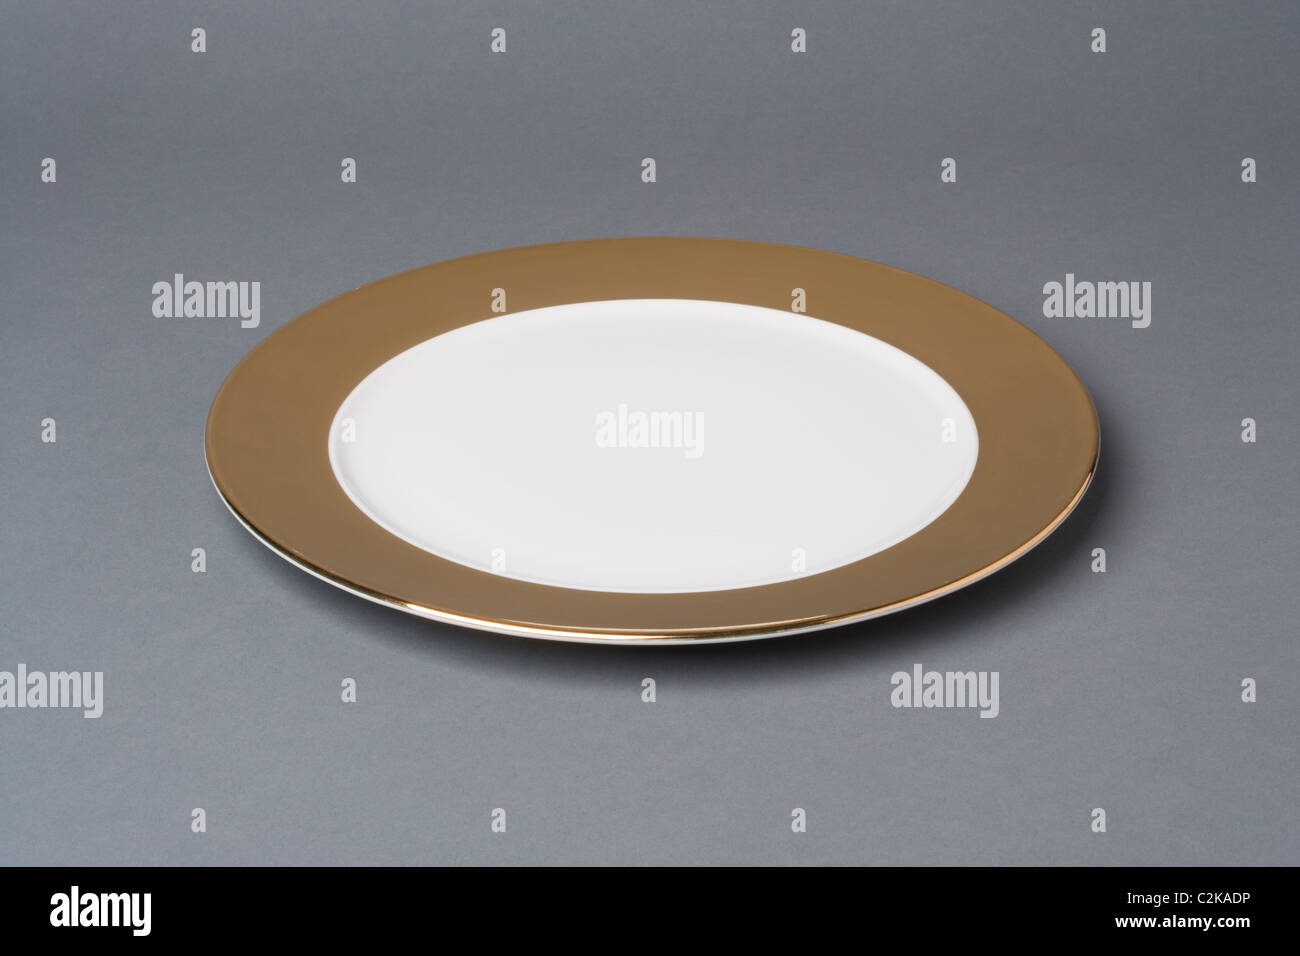 gold dinner plate on a grey background - Stock Image